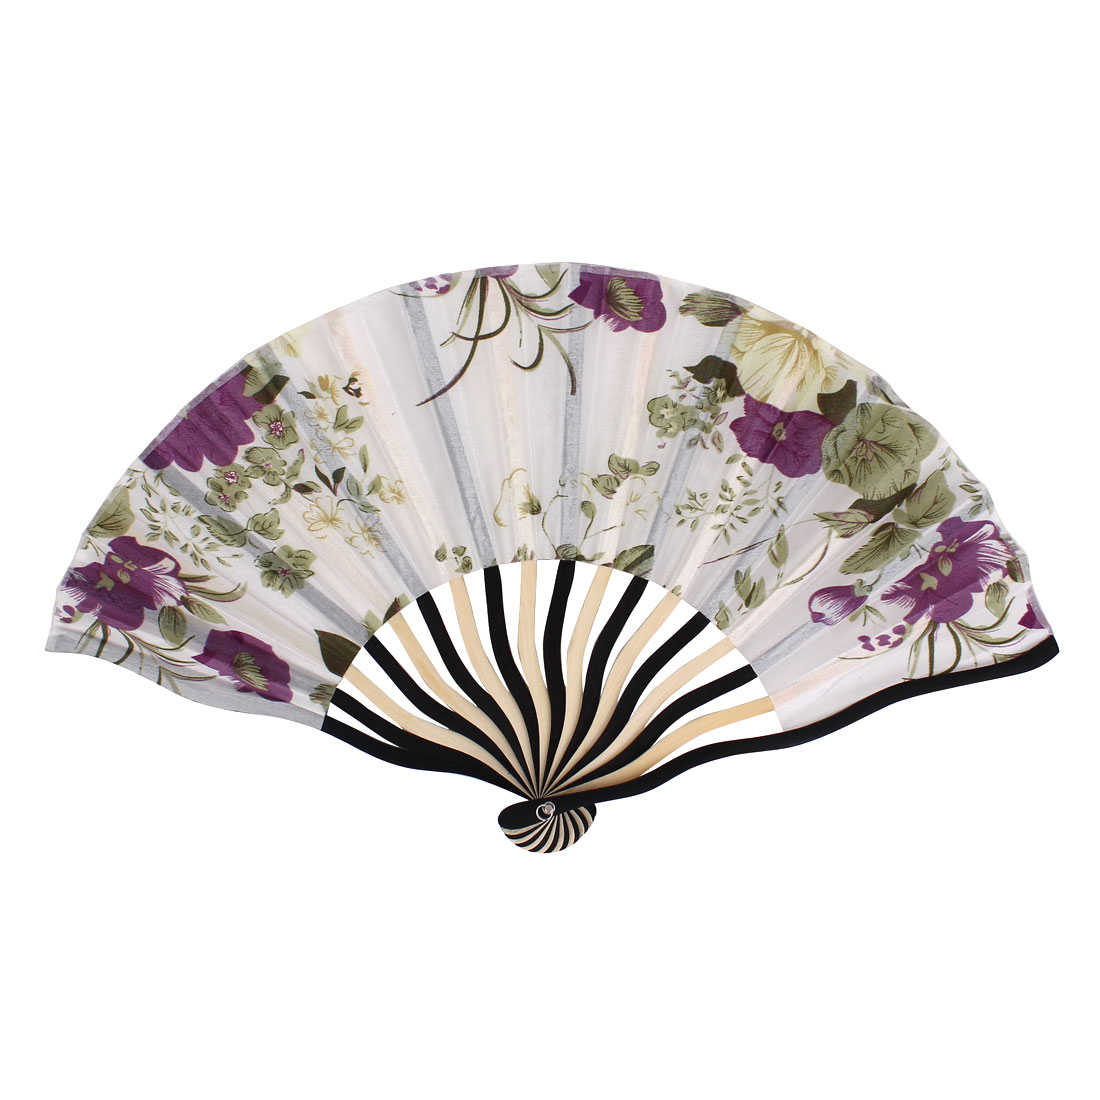 Chinese Blooming Peony Flower Print Ivory Black Wood Frame White Fabric Cloth Handheld Folding Hand Fan